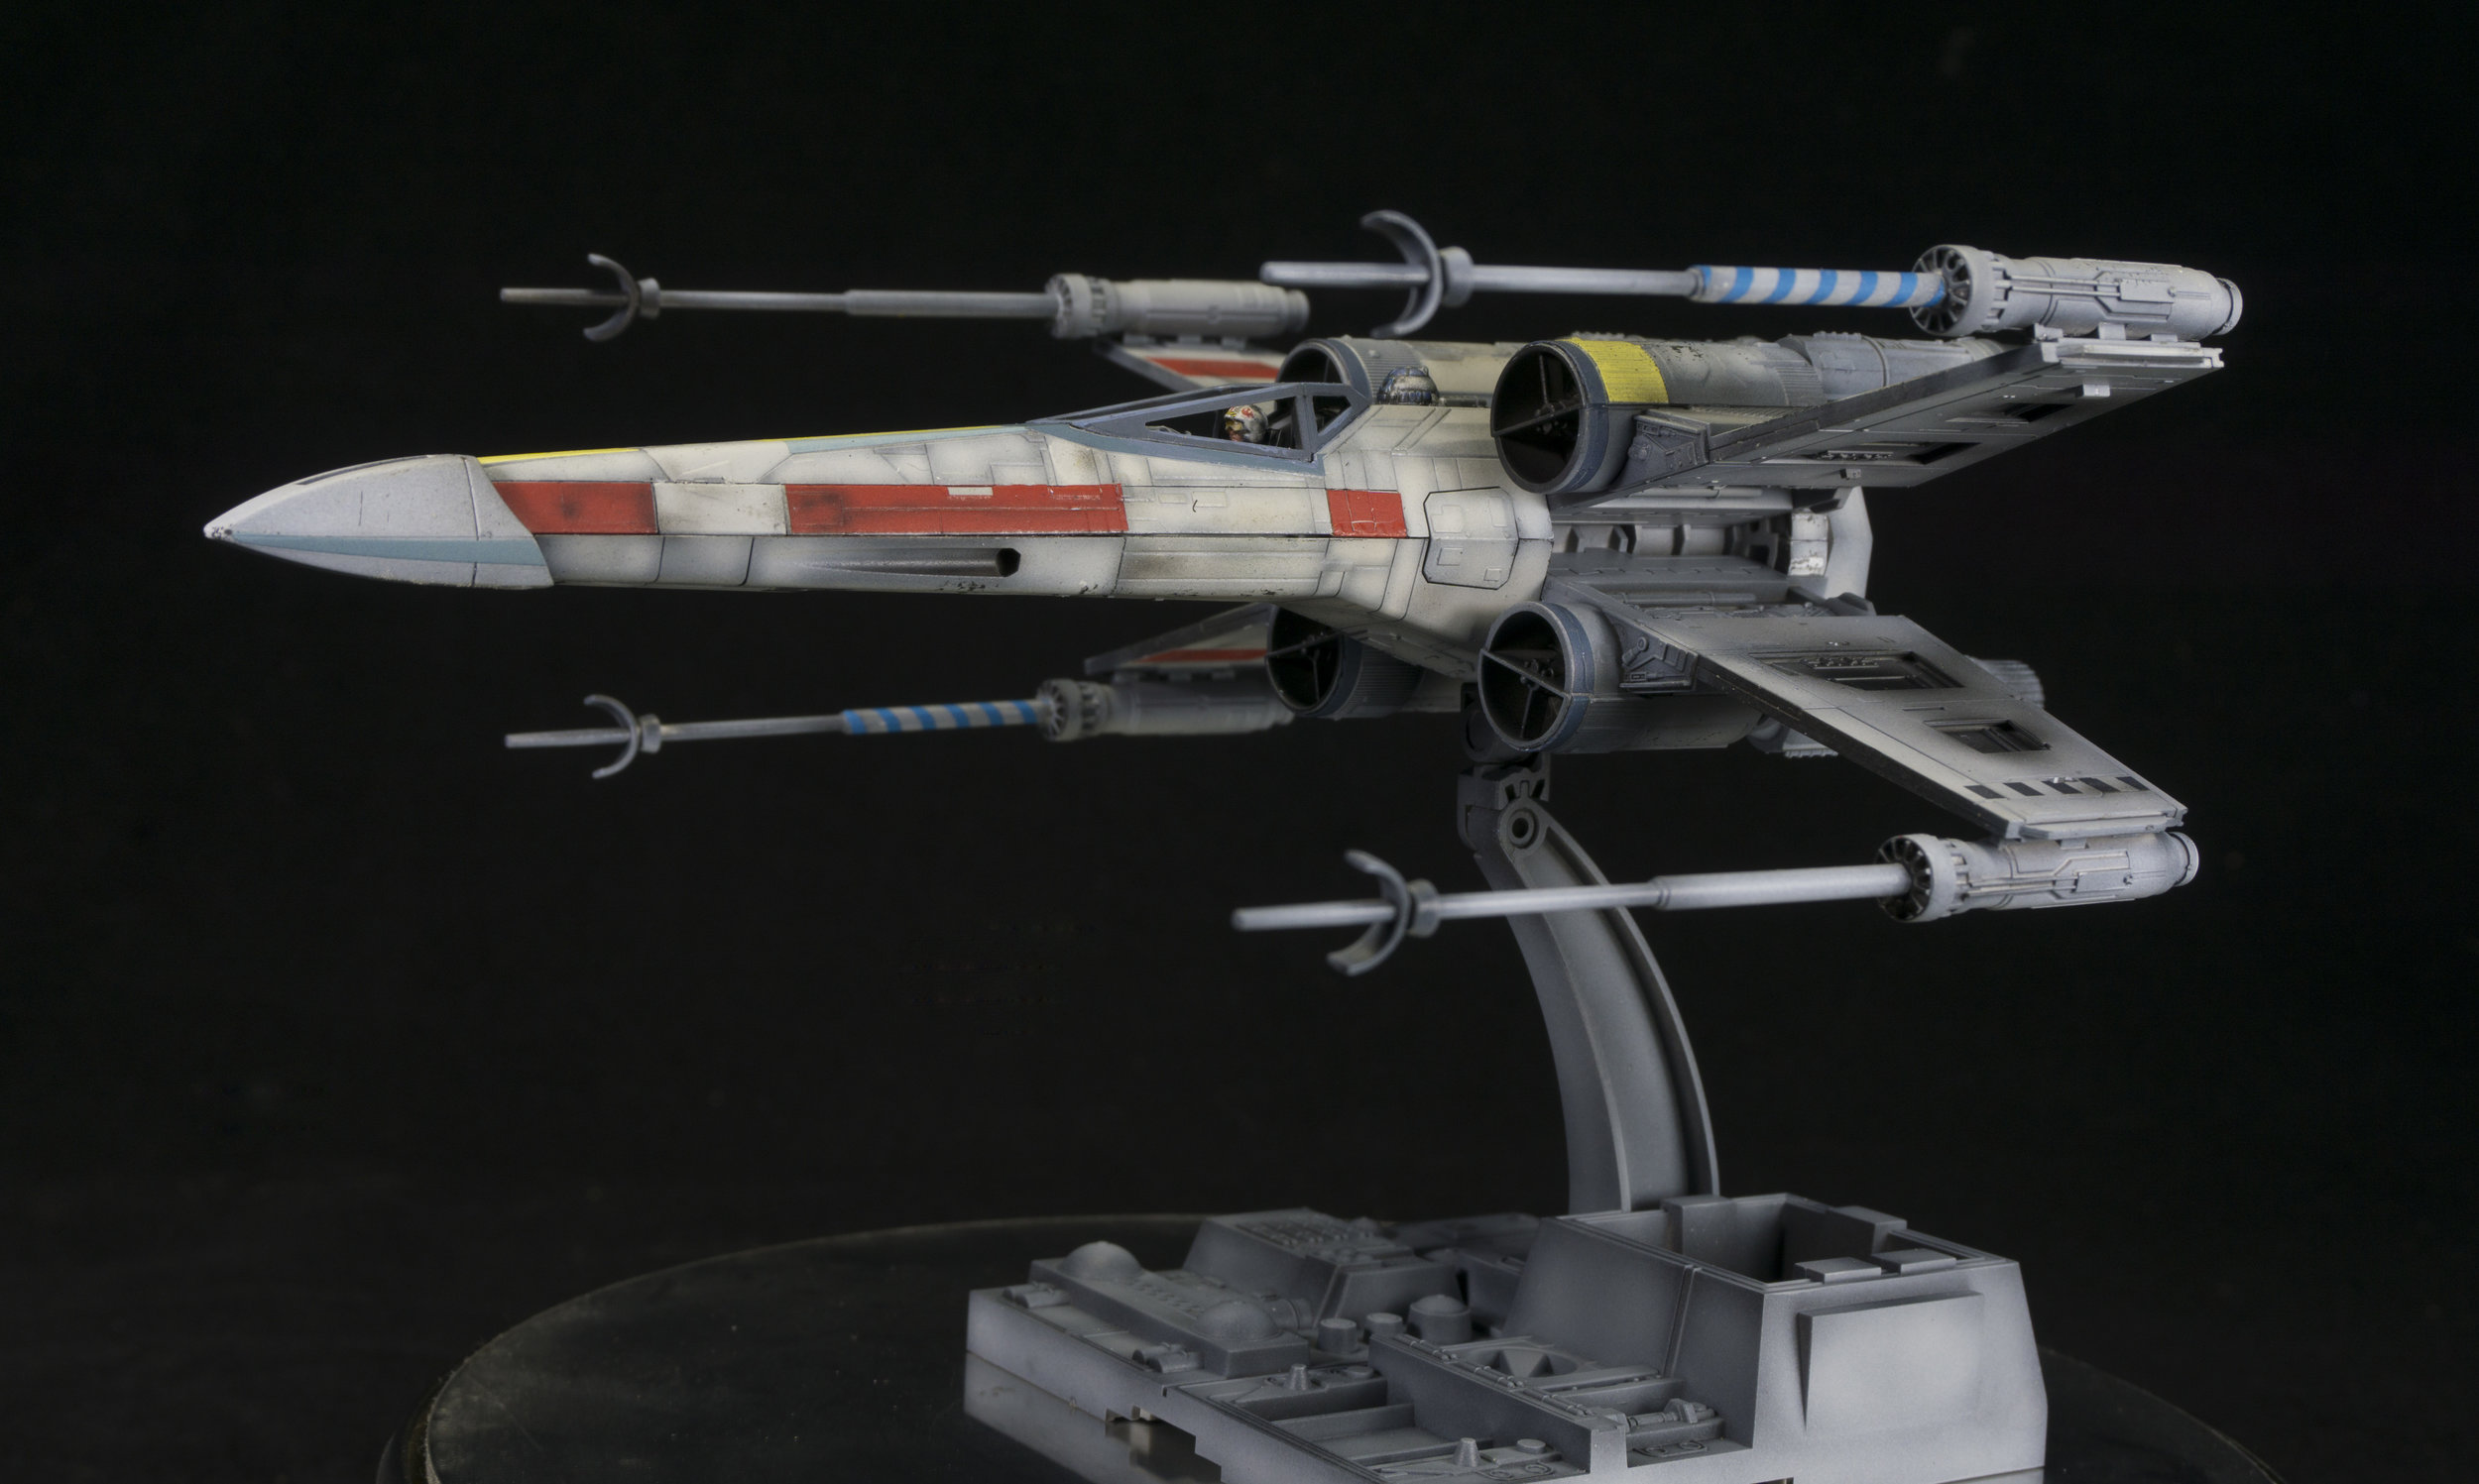 Bandai 1/72 scale X-Wing